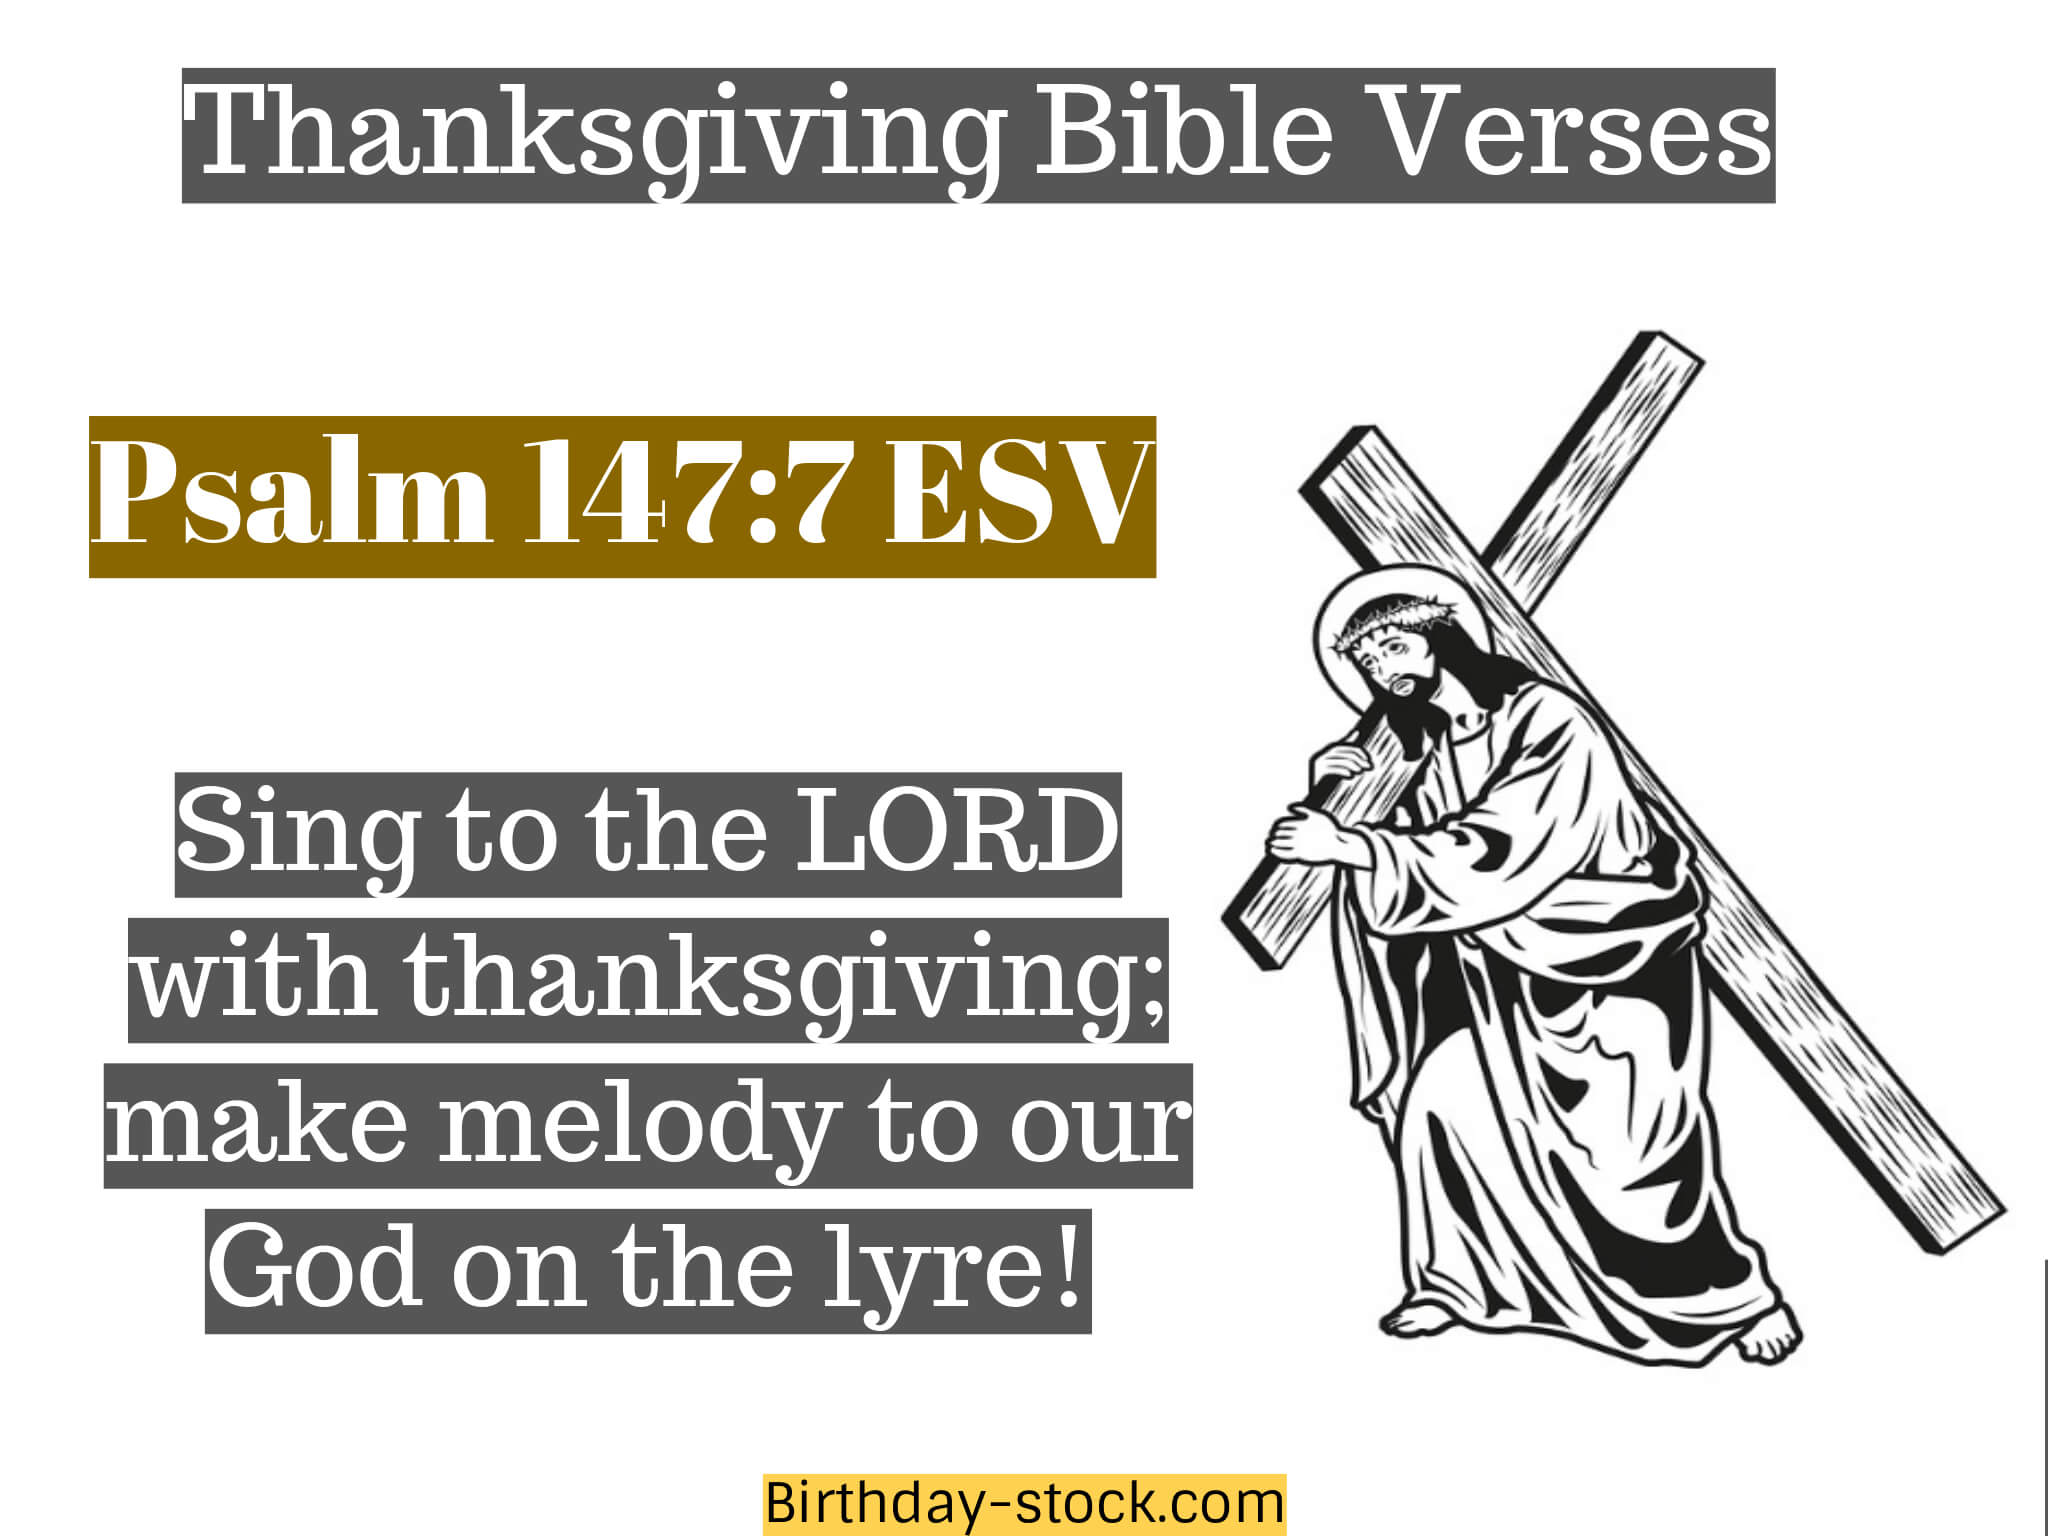 Thanksgiving Bible Verses for Christian Friends